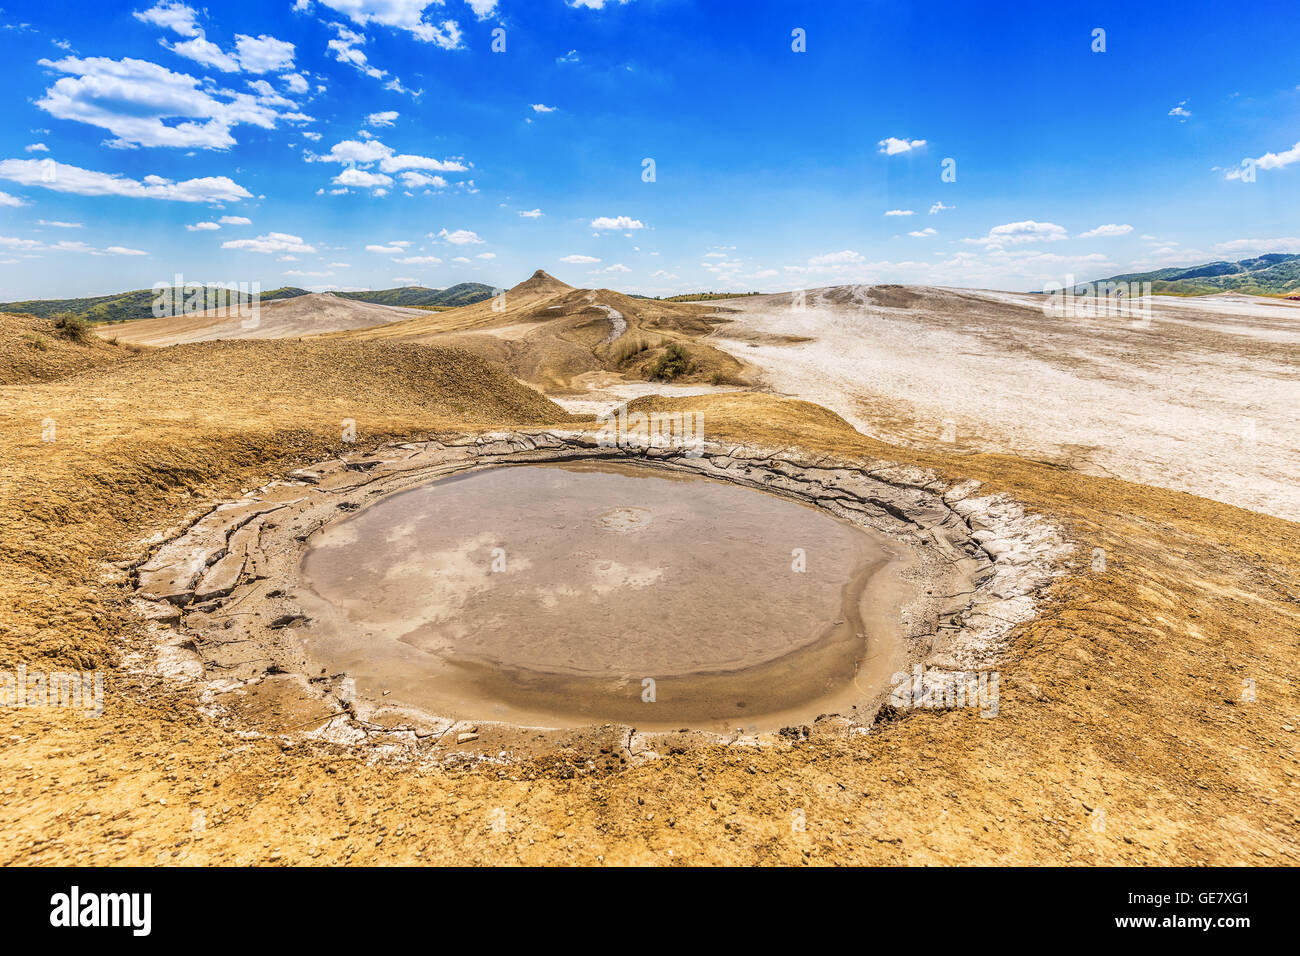 Mud volcano refers to formations created by geo-exuded mud or slurries, water and gases - Stock Image